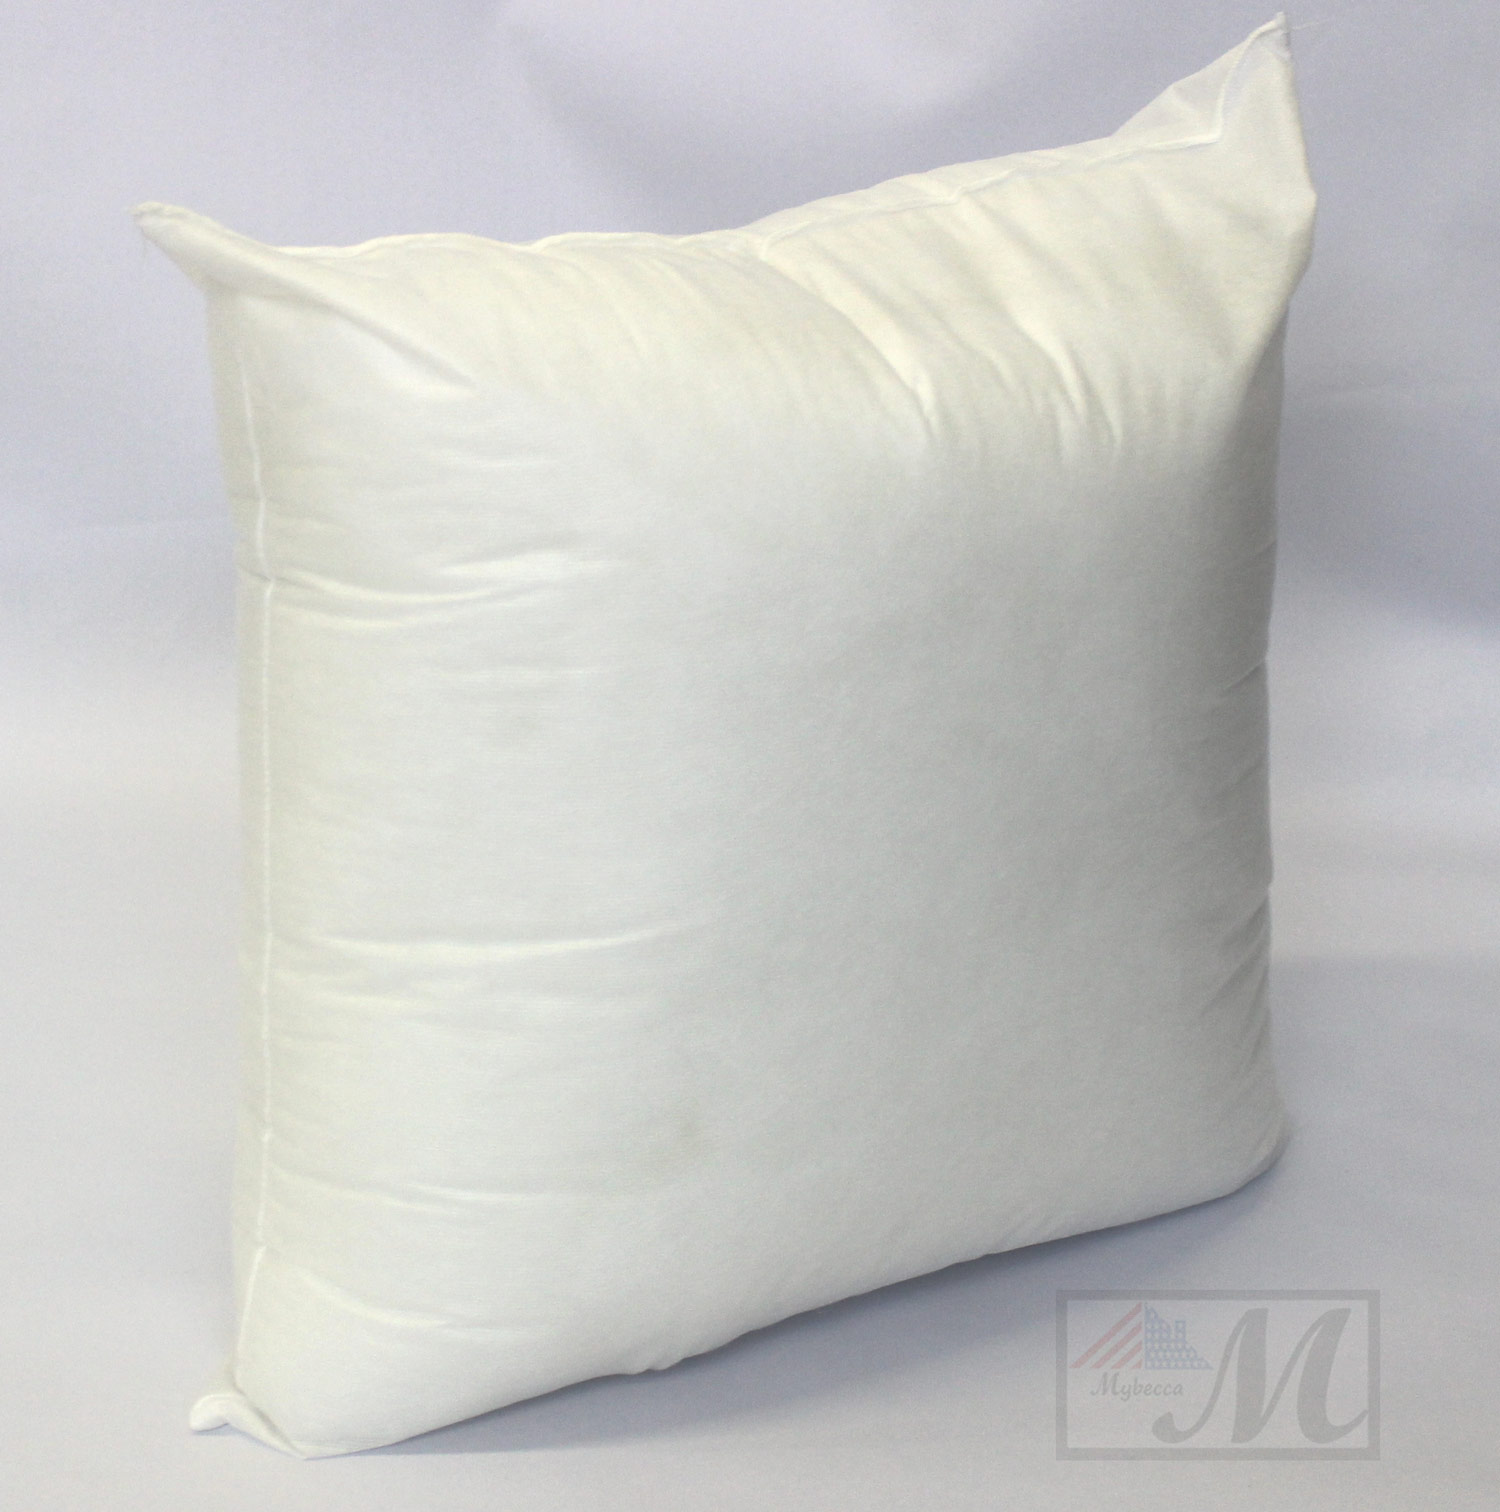 "Mybecca 18"" L X 18"" W Pillow Sham Stuffer White Square Hypoallergenic Pillow Insert (First Quality)"